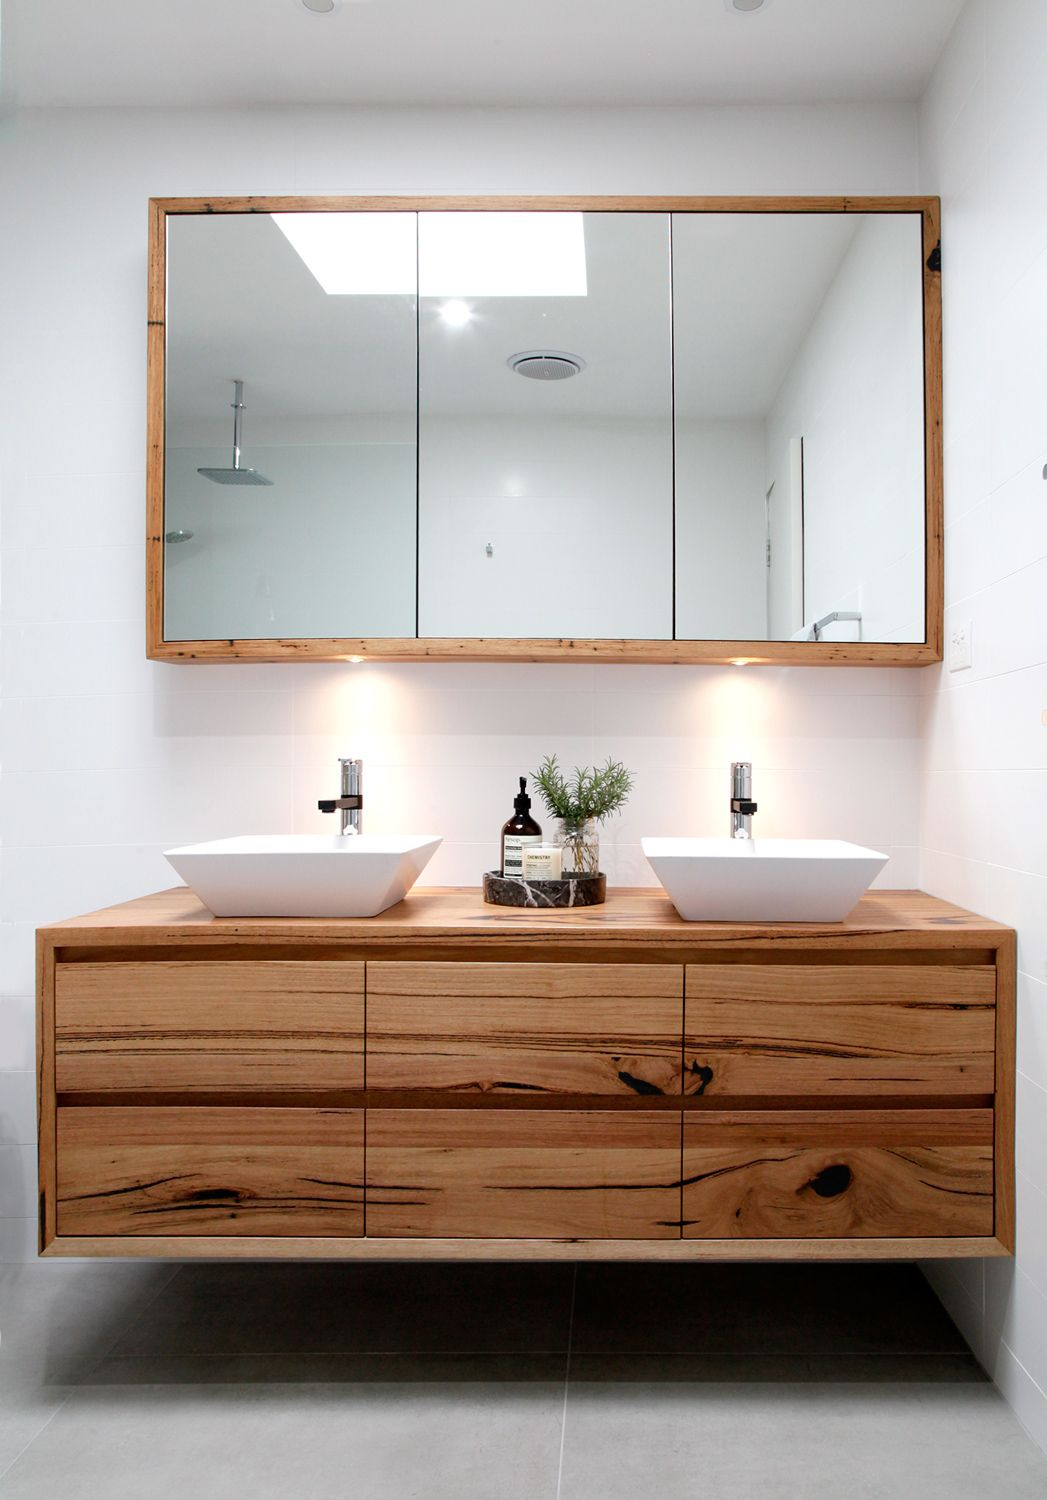 Bathroom Cabinets Australia Introducing The Iluka Wall Hung Recycled Timber Vanity